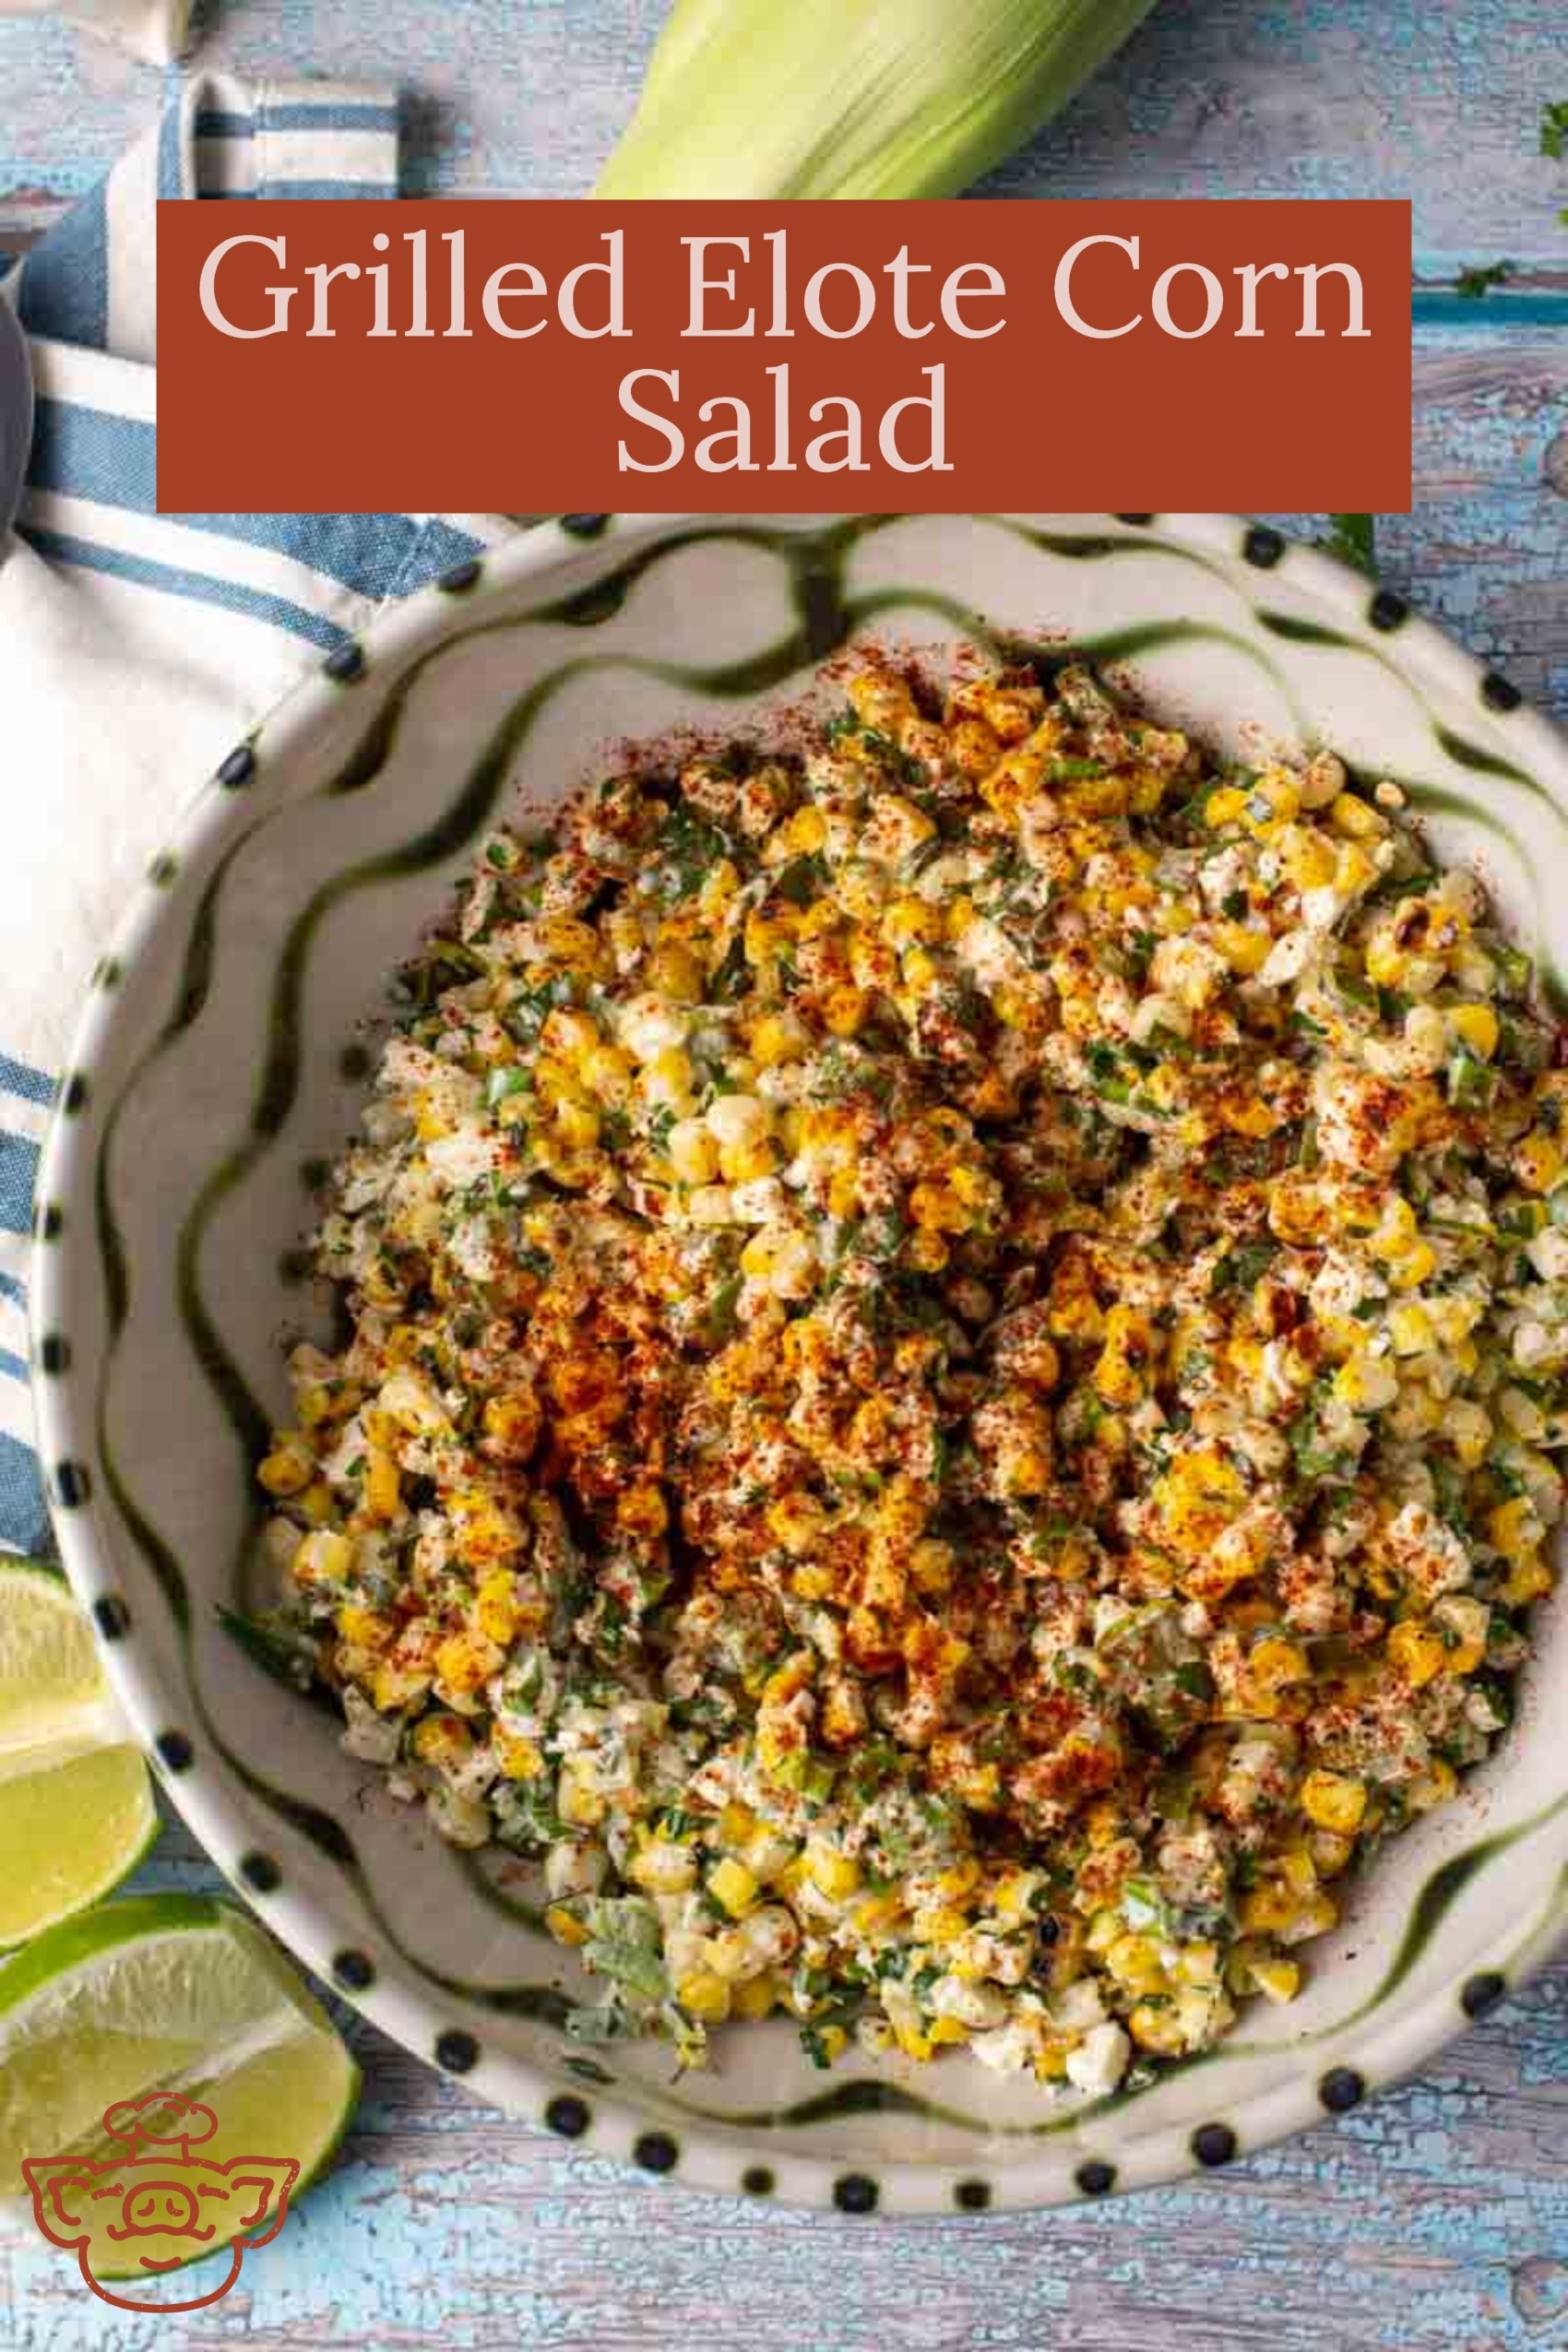 Grilled Elote Corn Salad